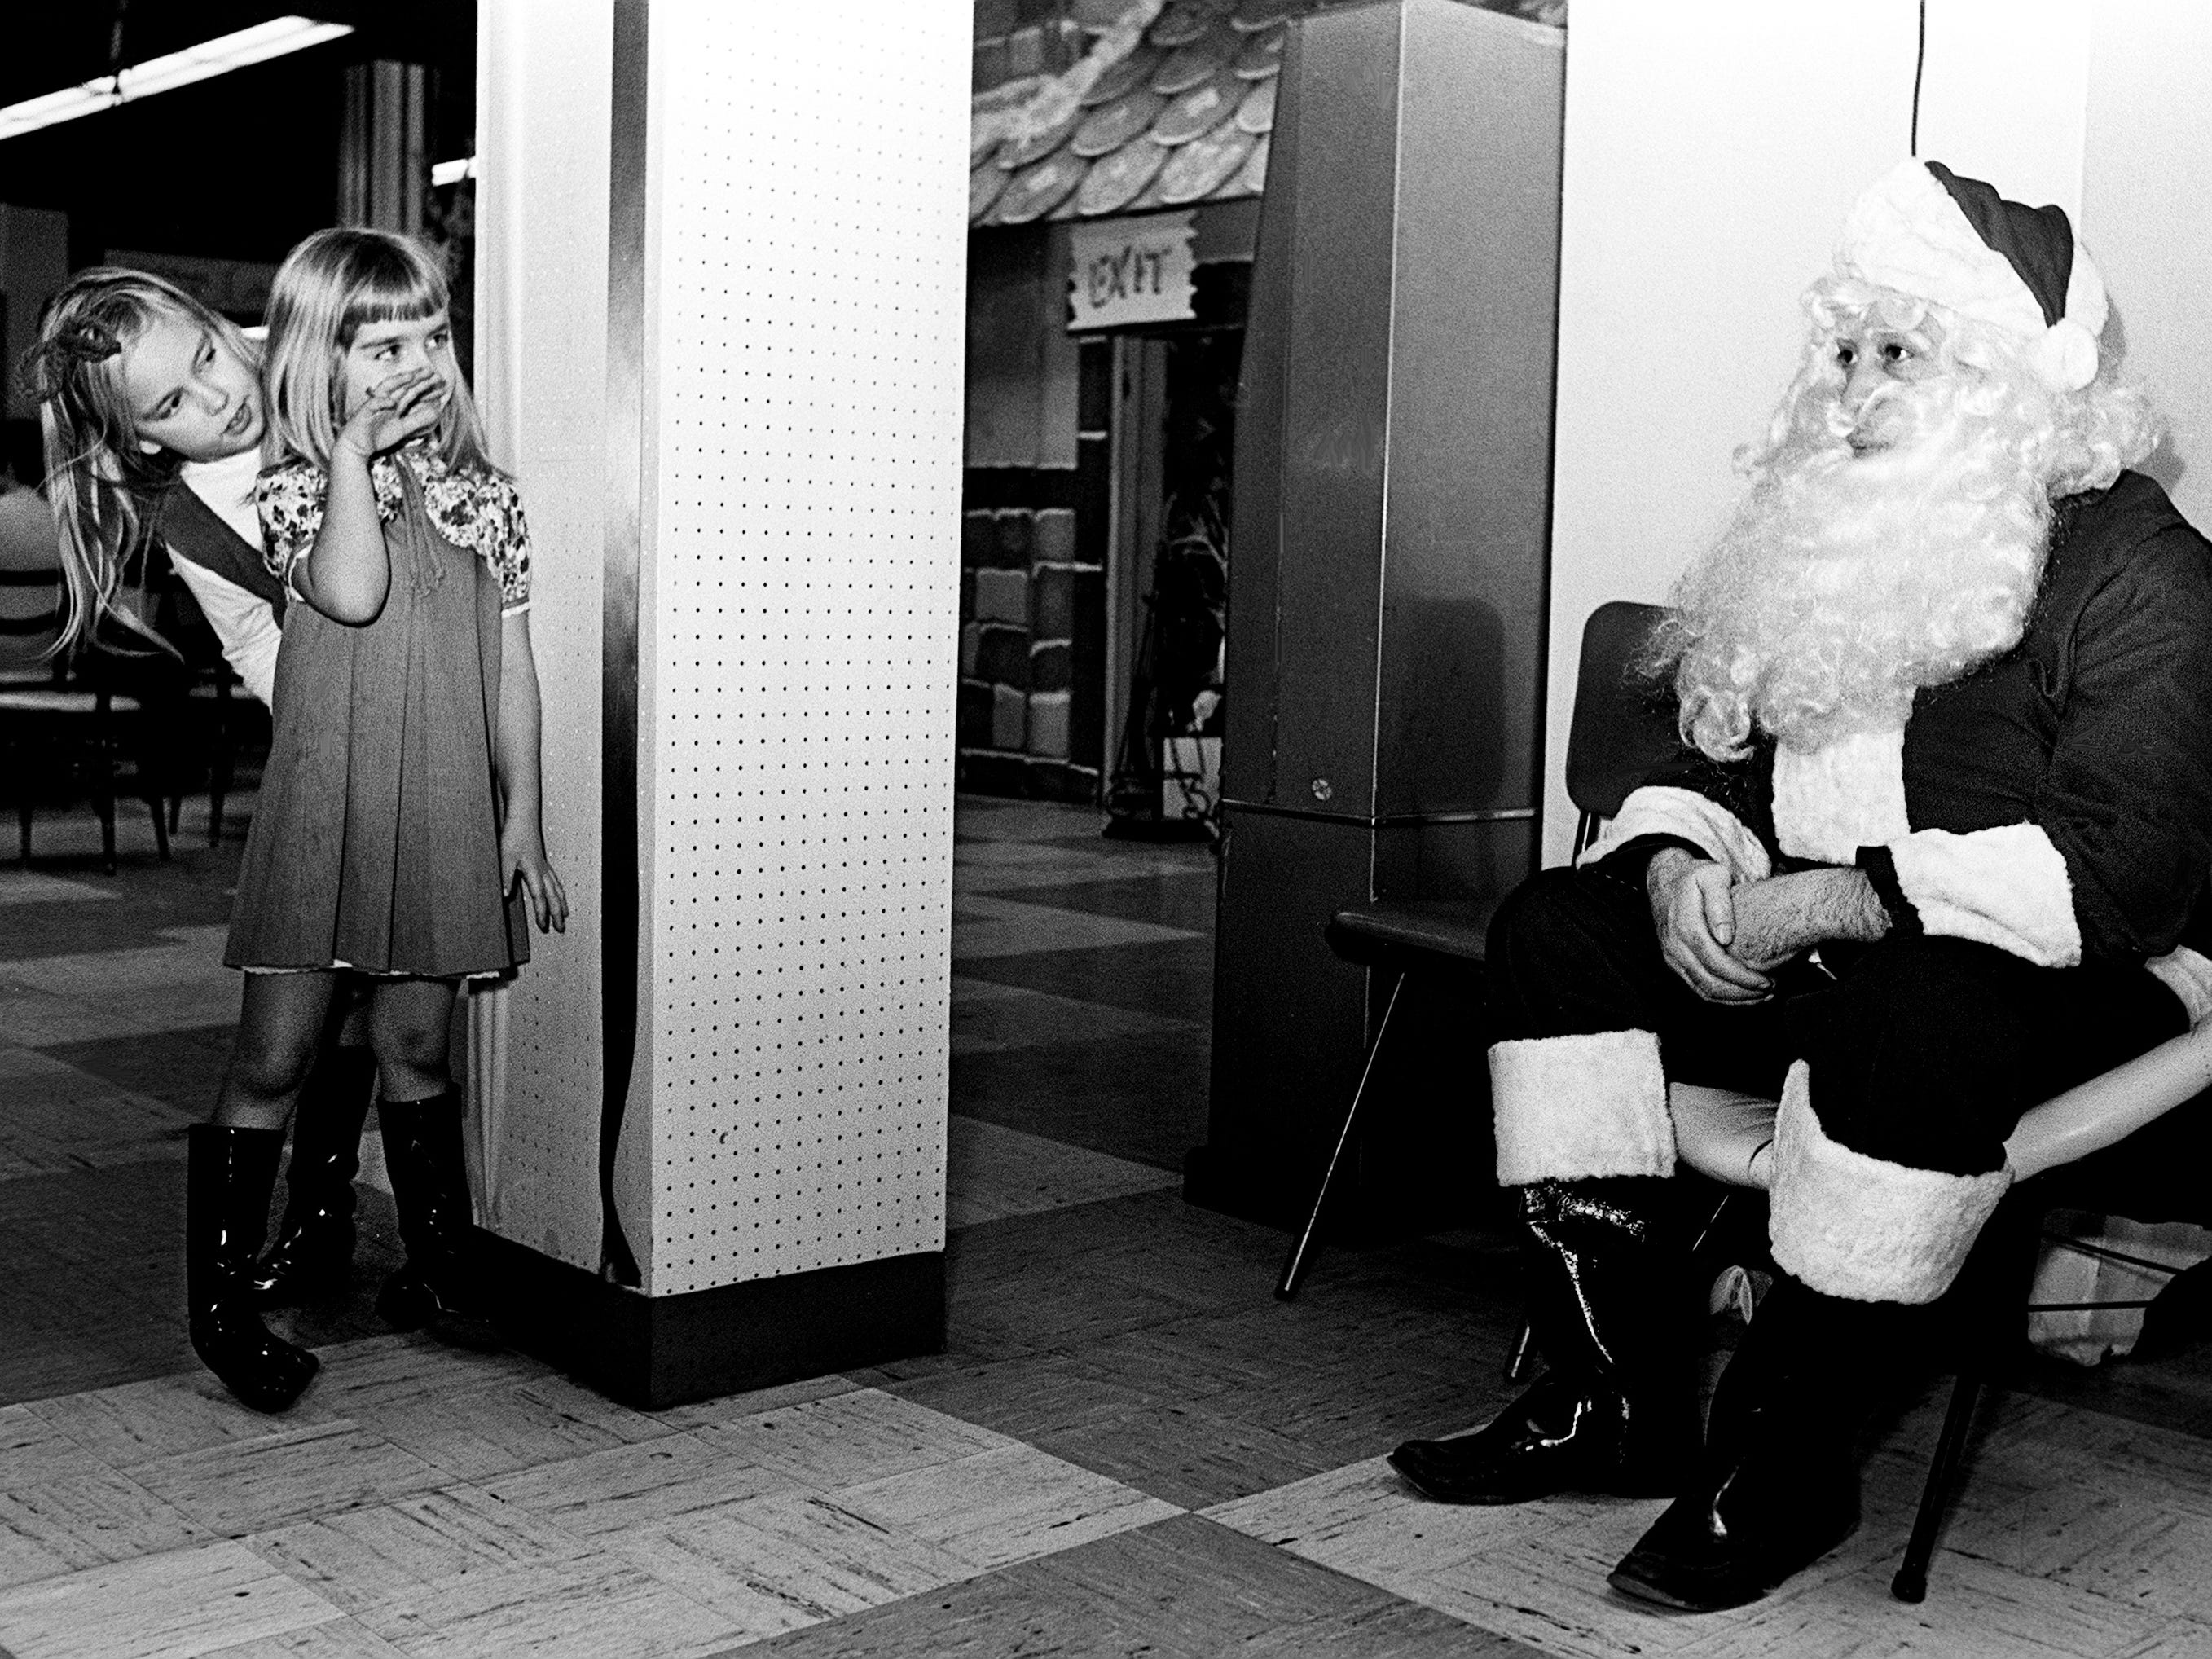 Marie Warren, 8, left, and sister Linda, 5, want to talk to Santa, but can't decide who should go first Dec. 13, 1968. The girls are the daughters of Mr. and Mrs. George Warren of Langford Cove, Old Hickory Lake.